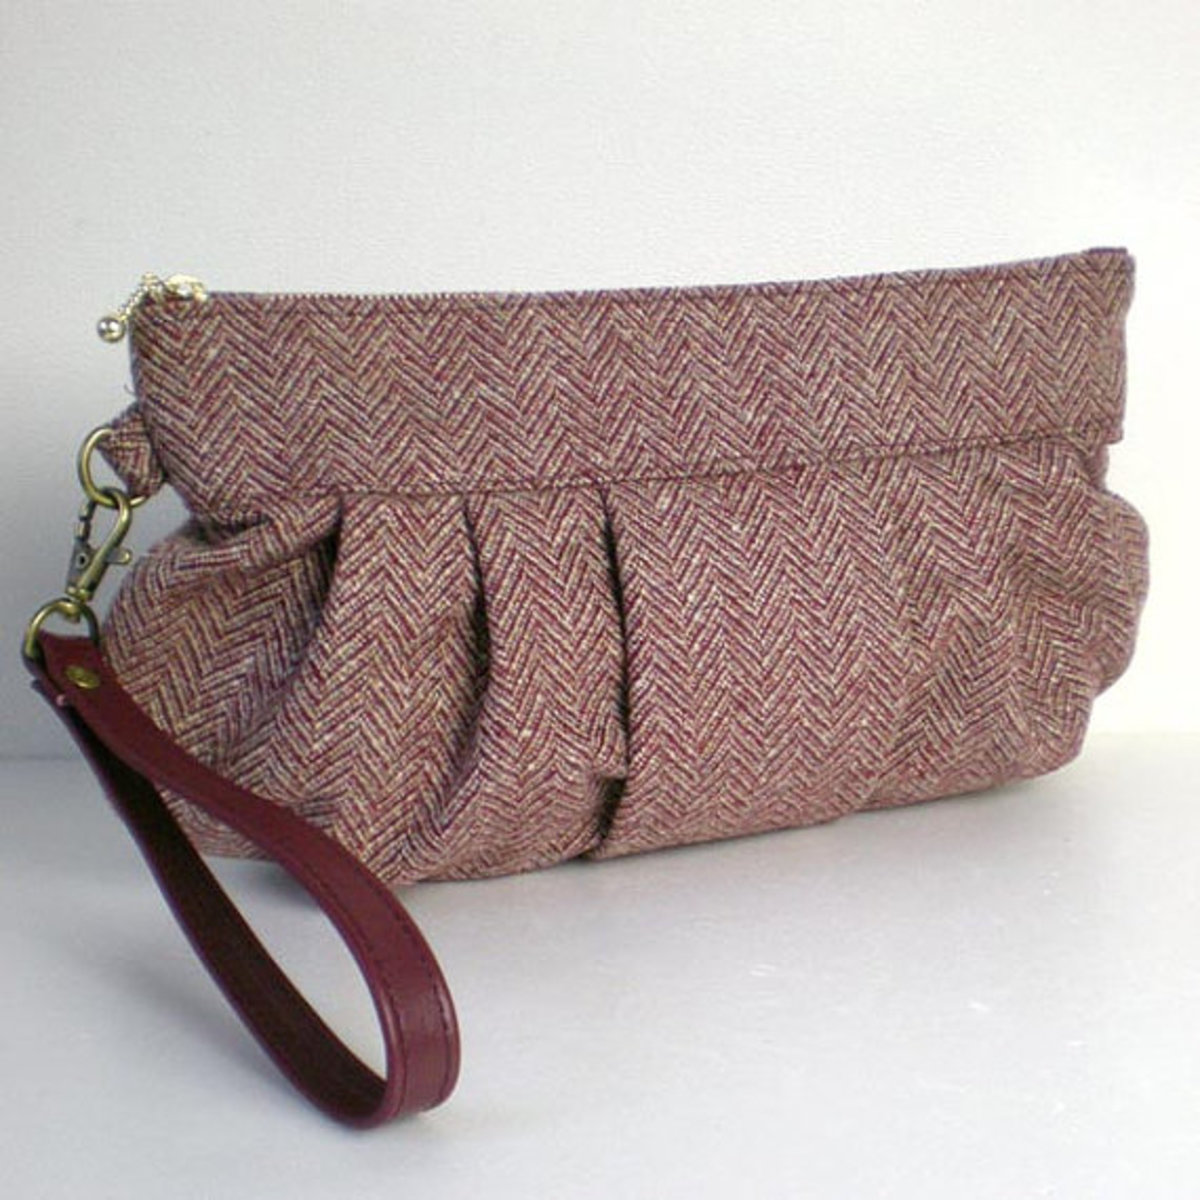 Herringbone Tweed Wool Wristlet Clutch bag with a leather strap, purple brown